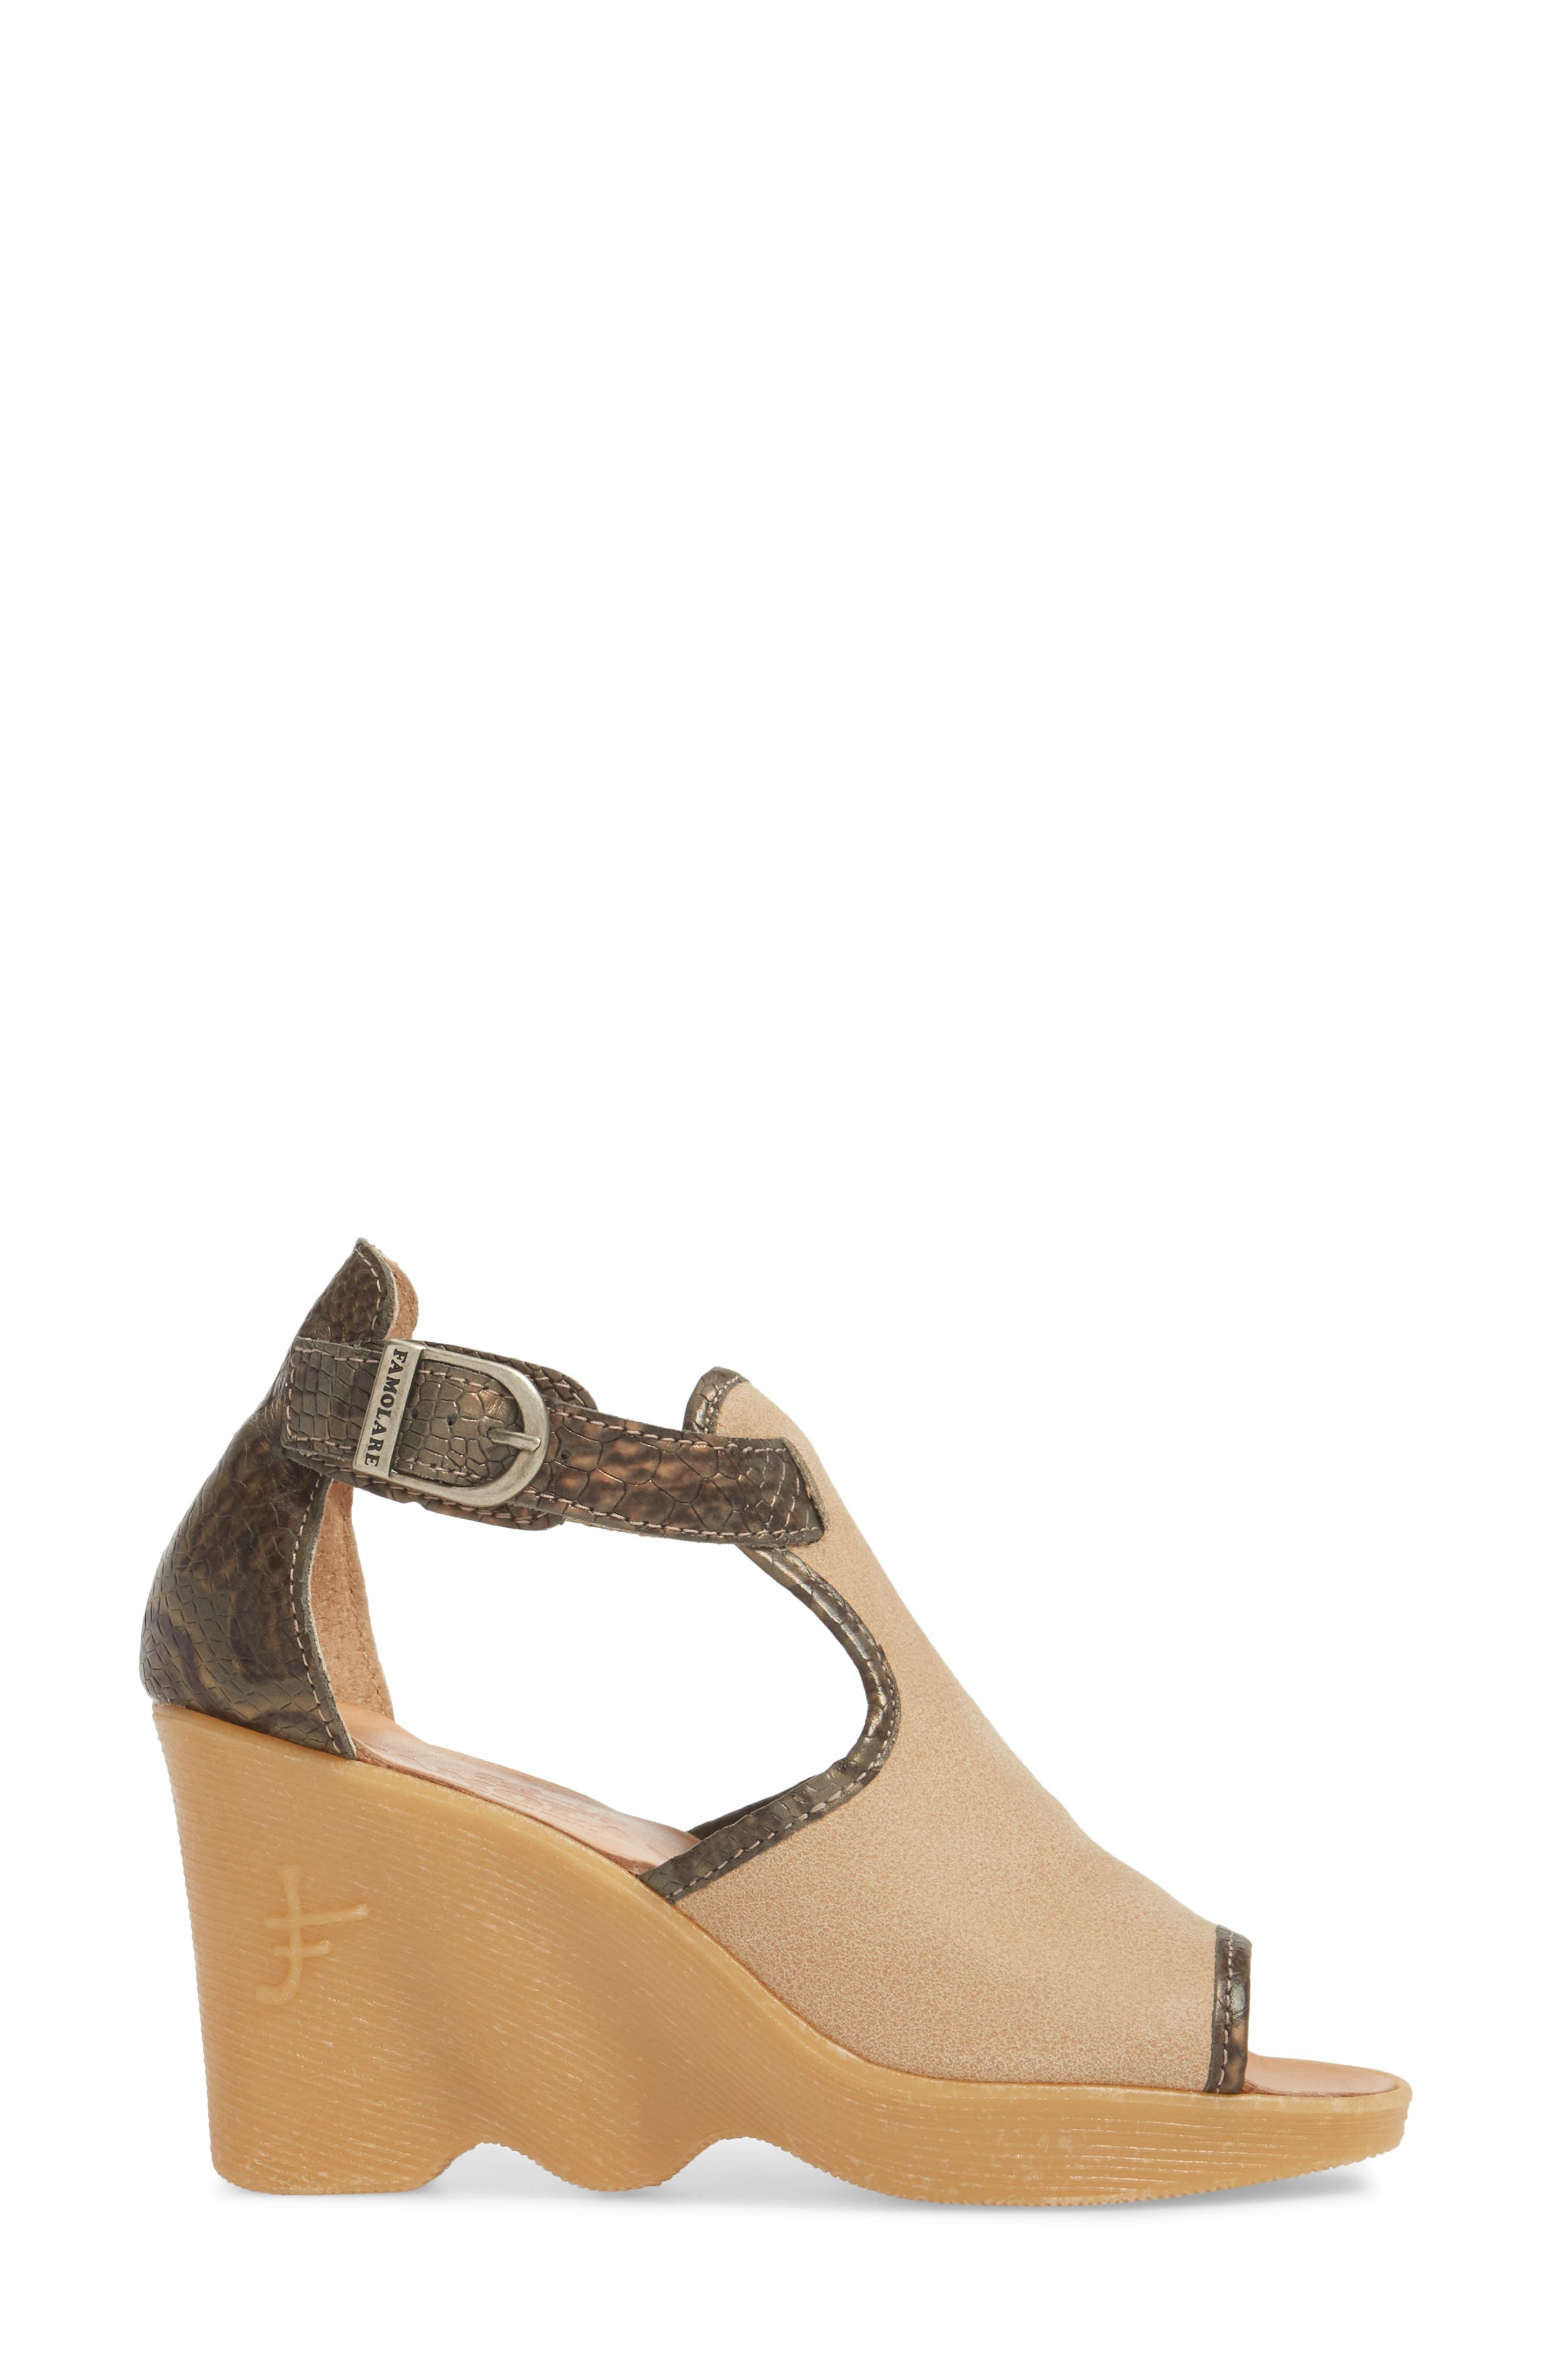 Queen Bee Wedge Sandal,                             Alternate thumbnail 3, color,                             NUDE MIX LEATHER